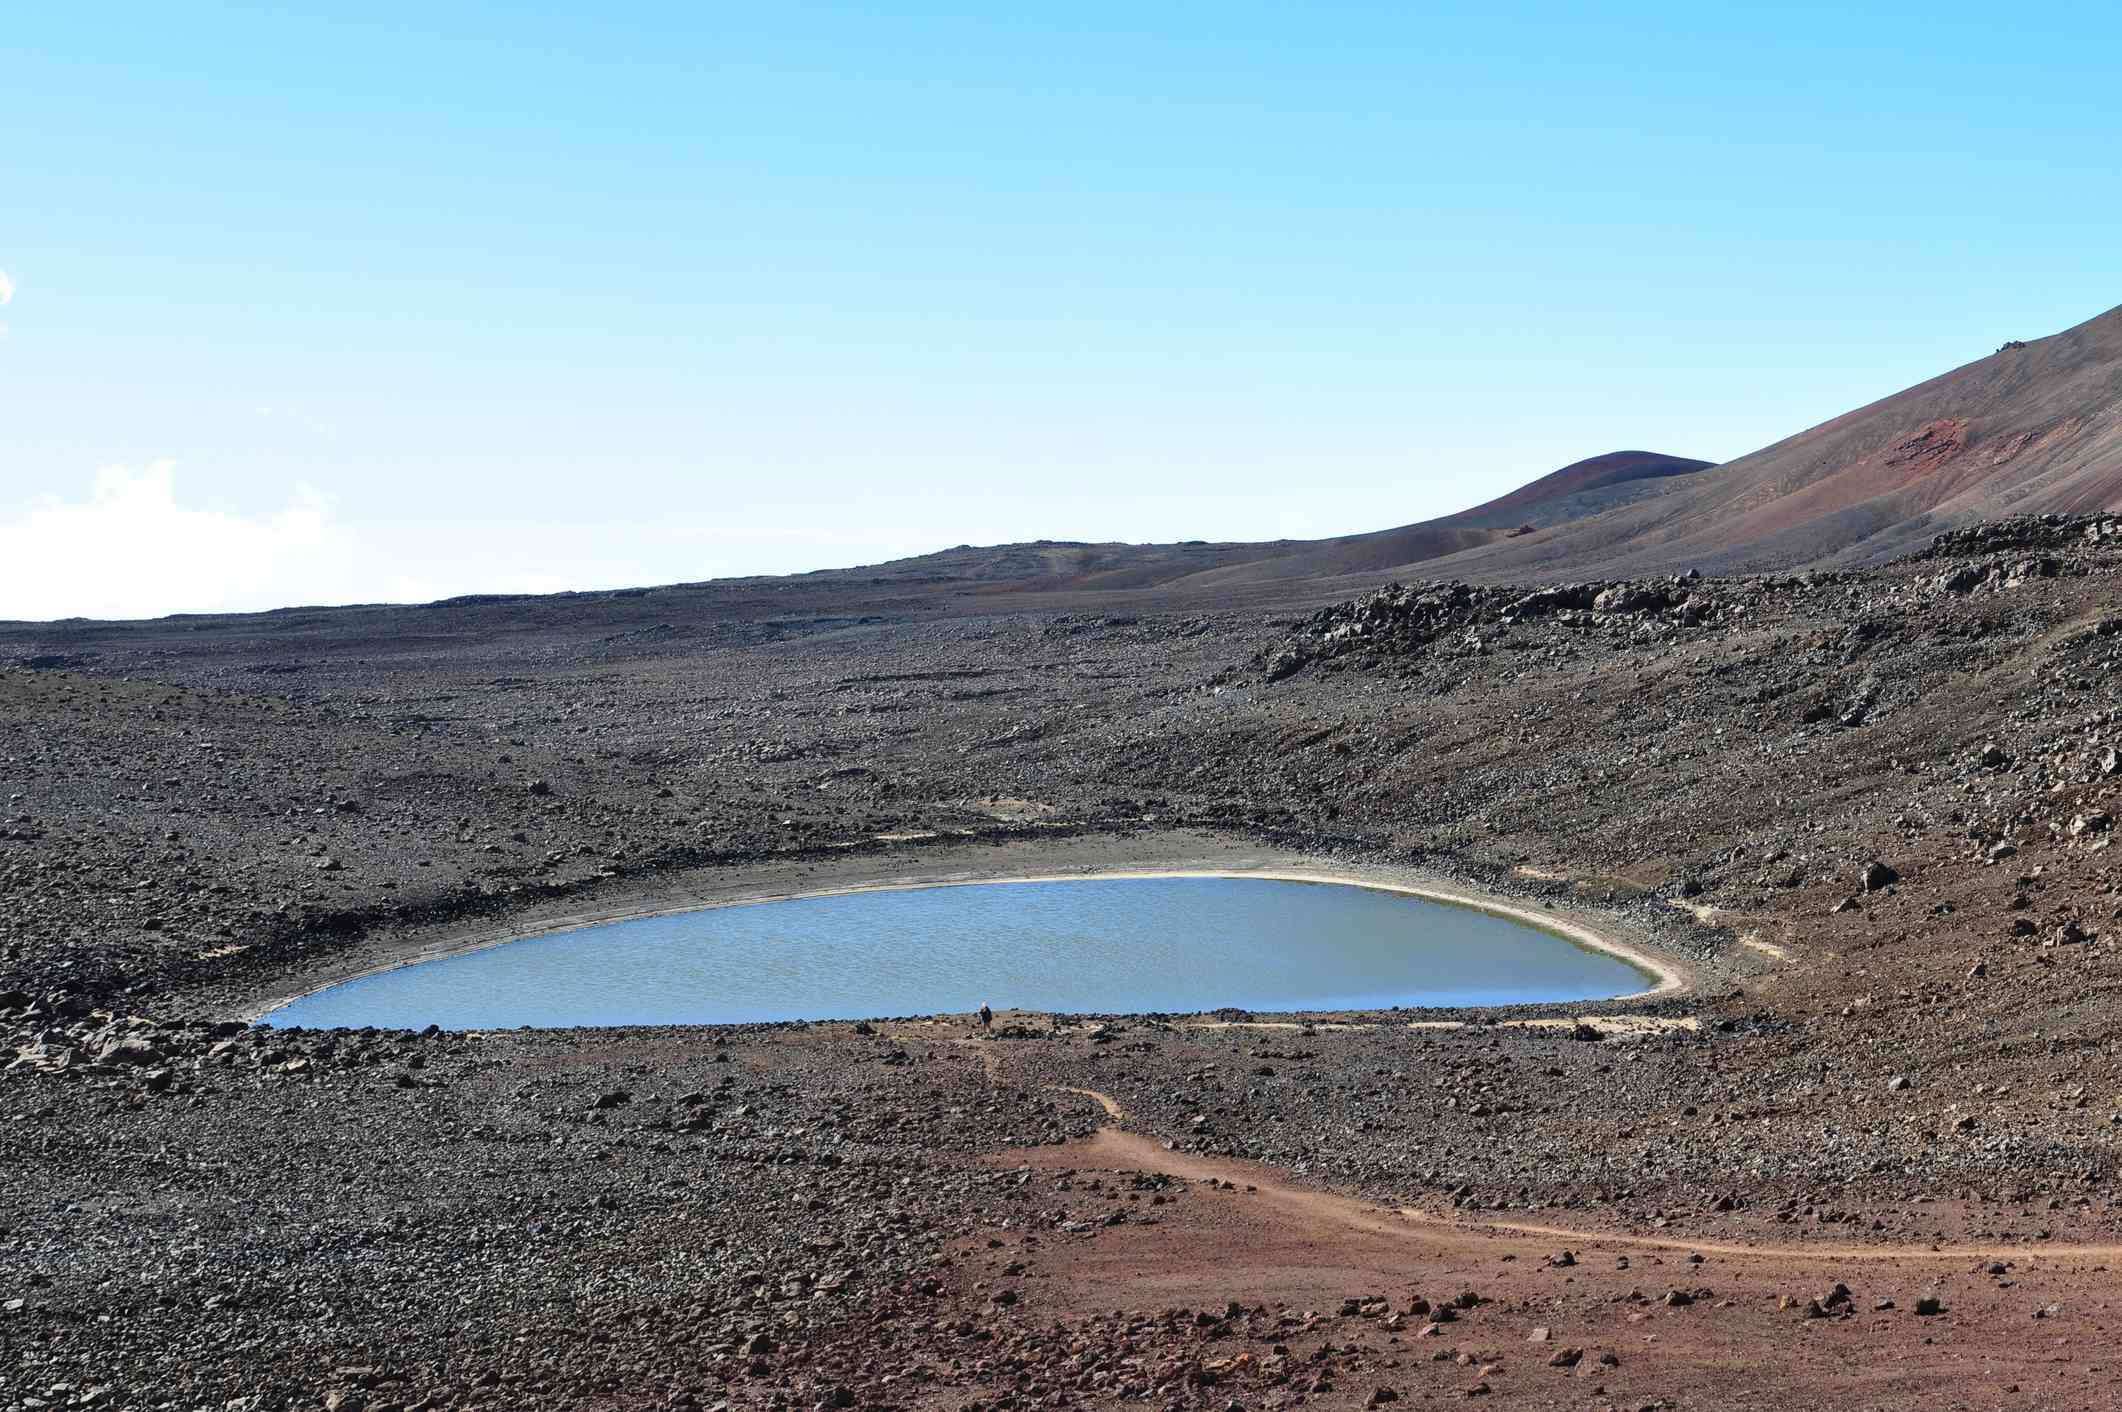 A small lake in a high, volcanic mountain environment